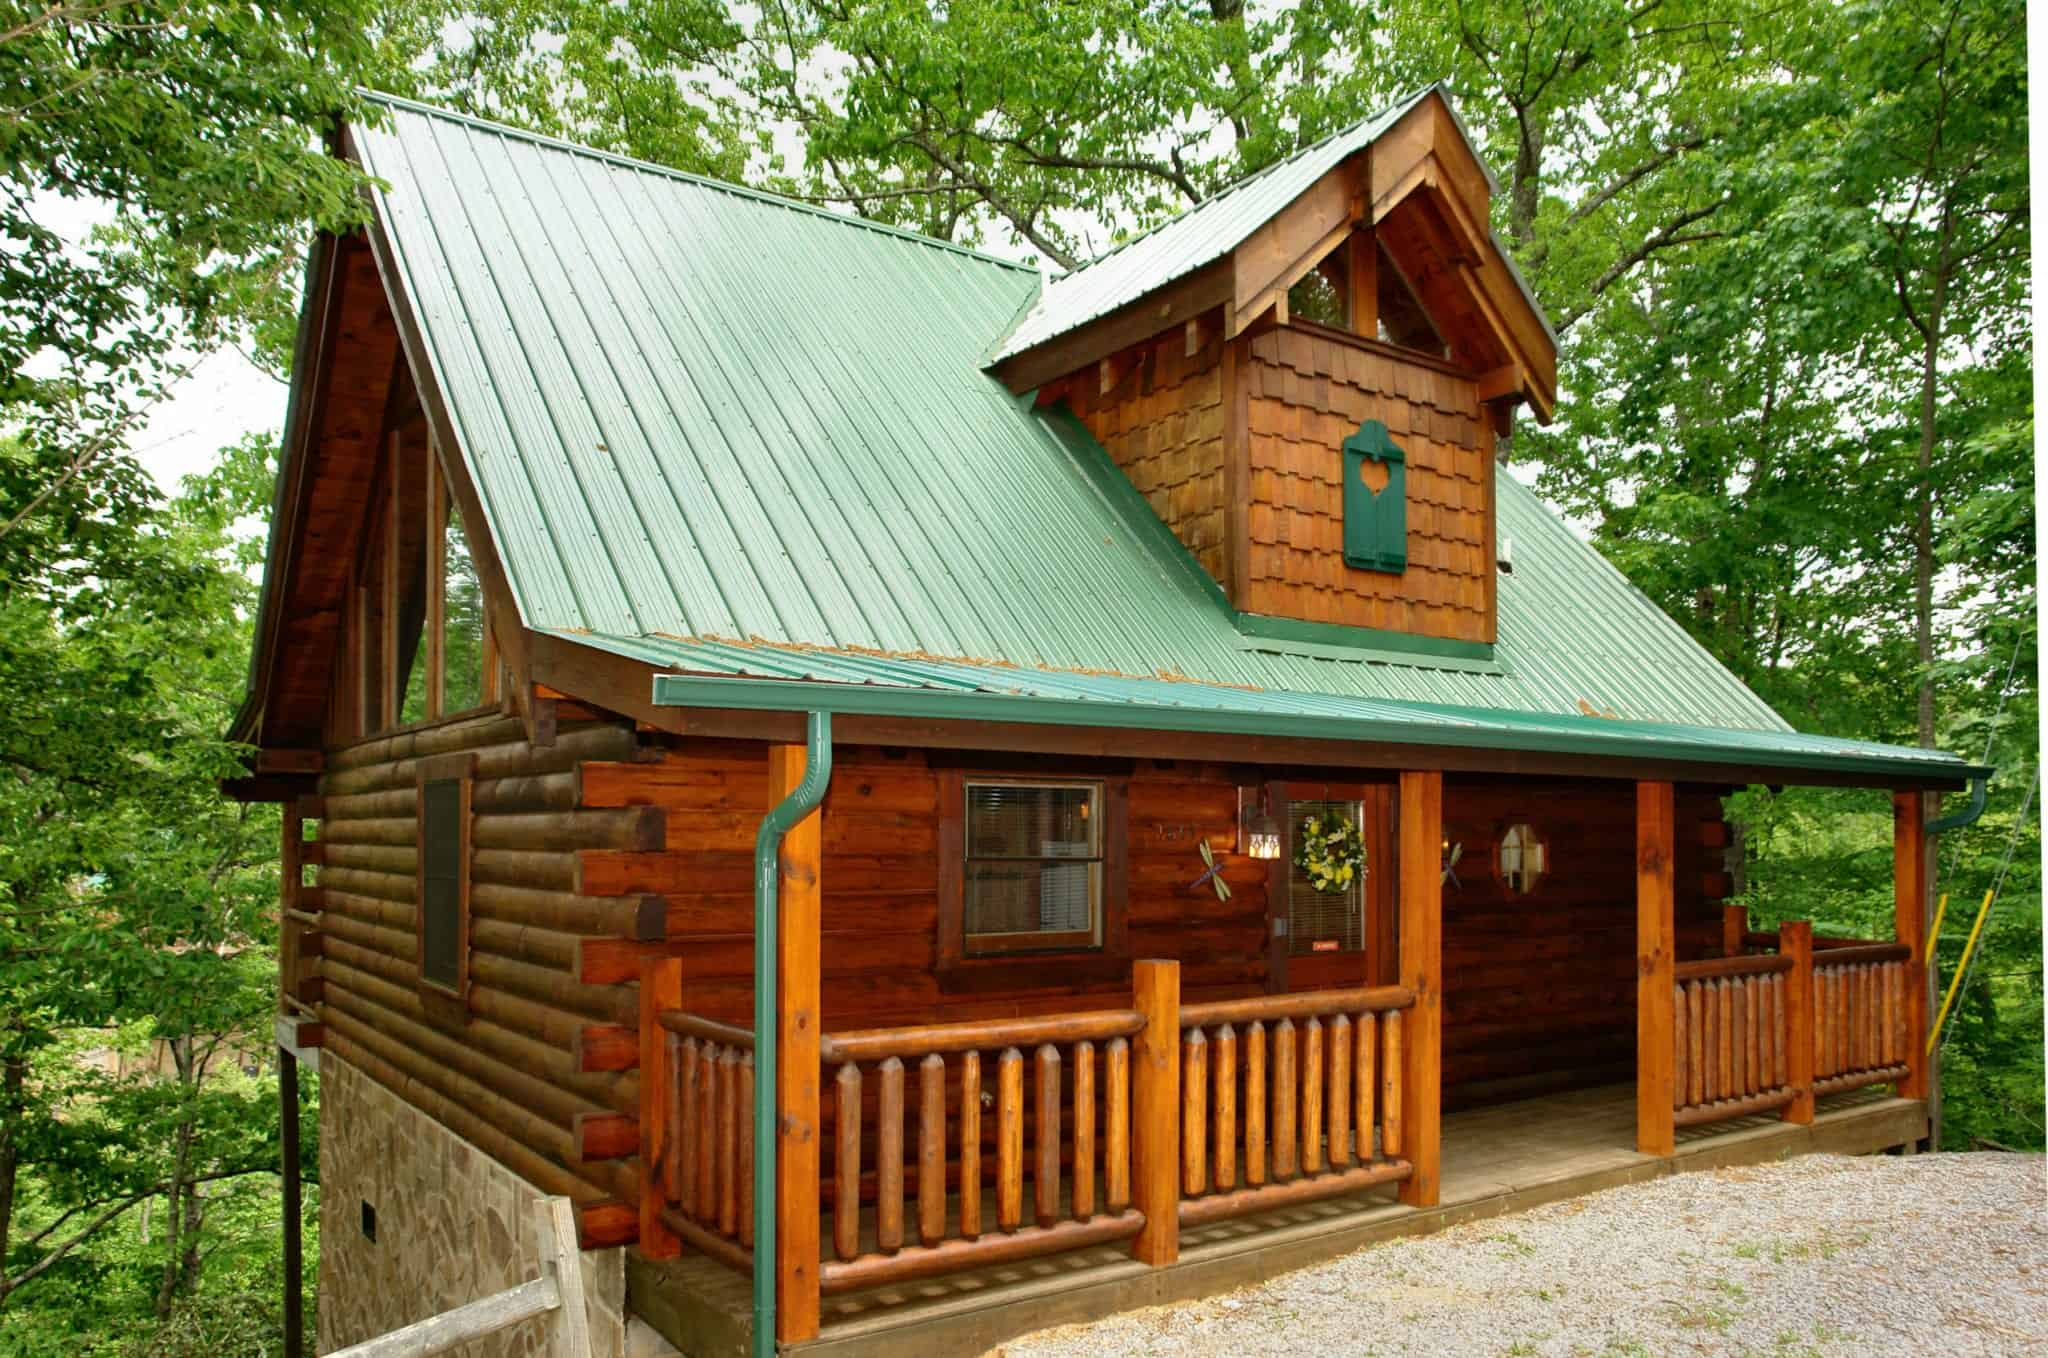 pictures elk great of resort indoor in springs gatlinburg with x photo luxury lovely tn tennesse pool cabins